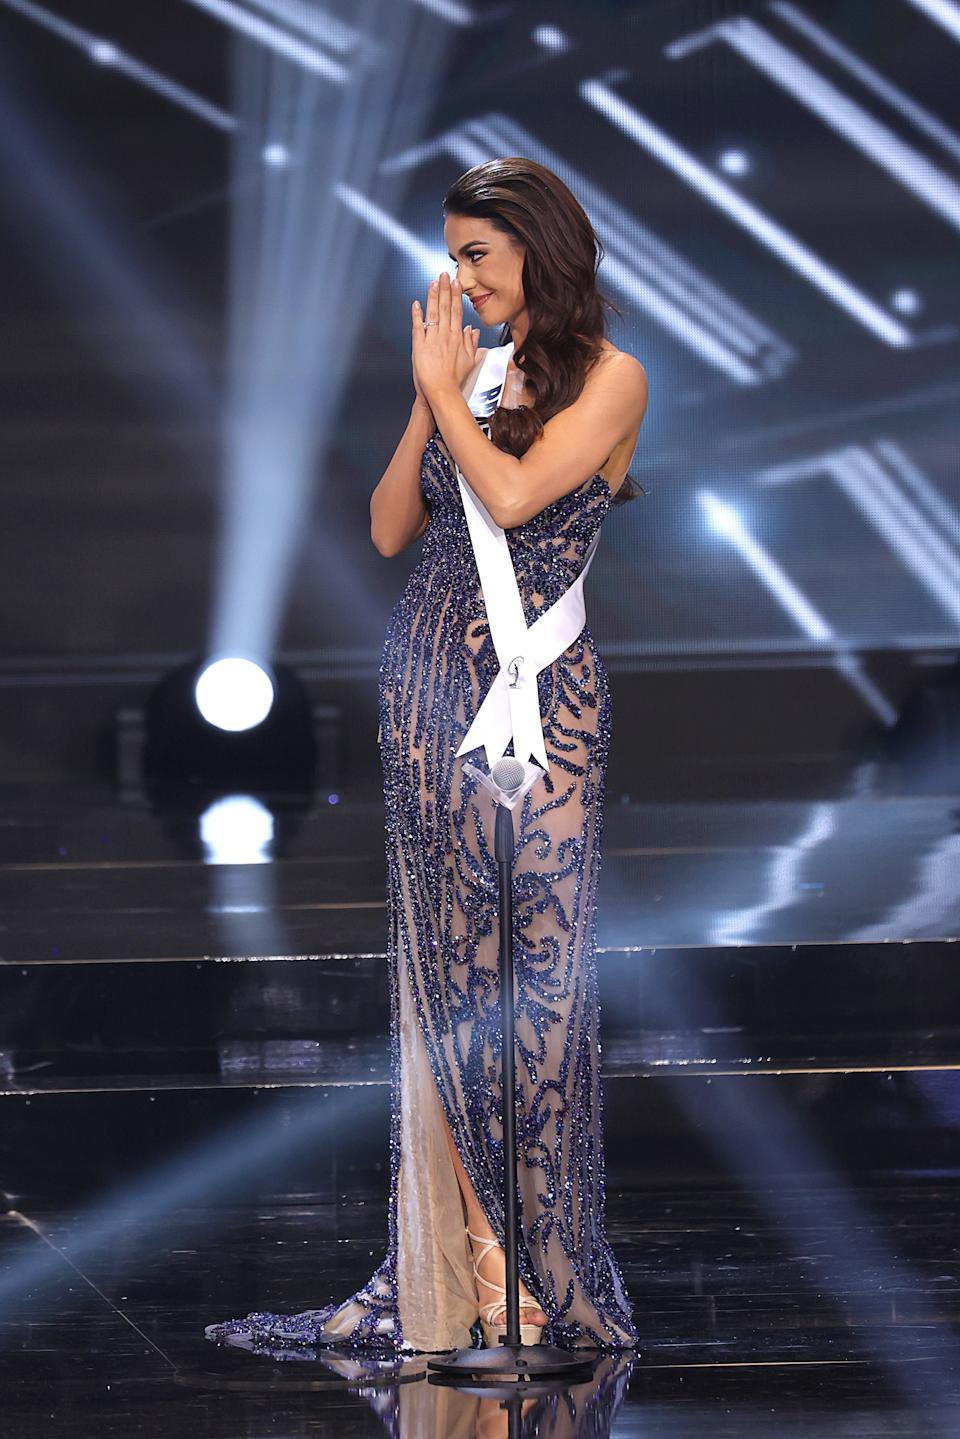 HOLLYWOOD, FLORIDA - MAY 16: Miss Universe Brazil Julia Gama appears onstage at the Miss Universe 2021 Pageant at Seminole Hard Rock Hotel & Casino on May 16, 2021 in Hollywood, Florida. (Photo by Rodrigo Varela/Getty Images)